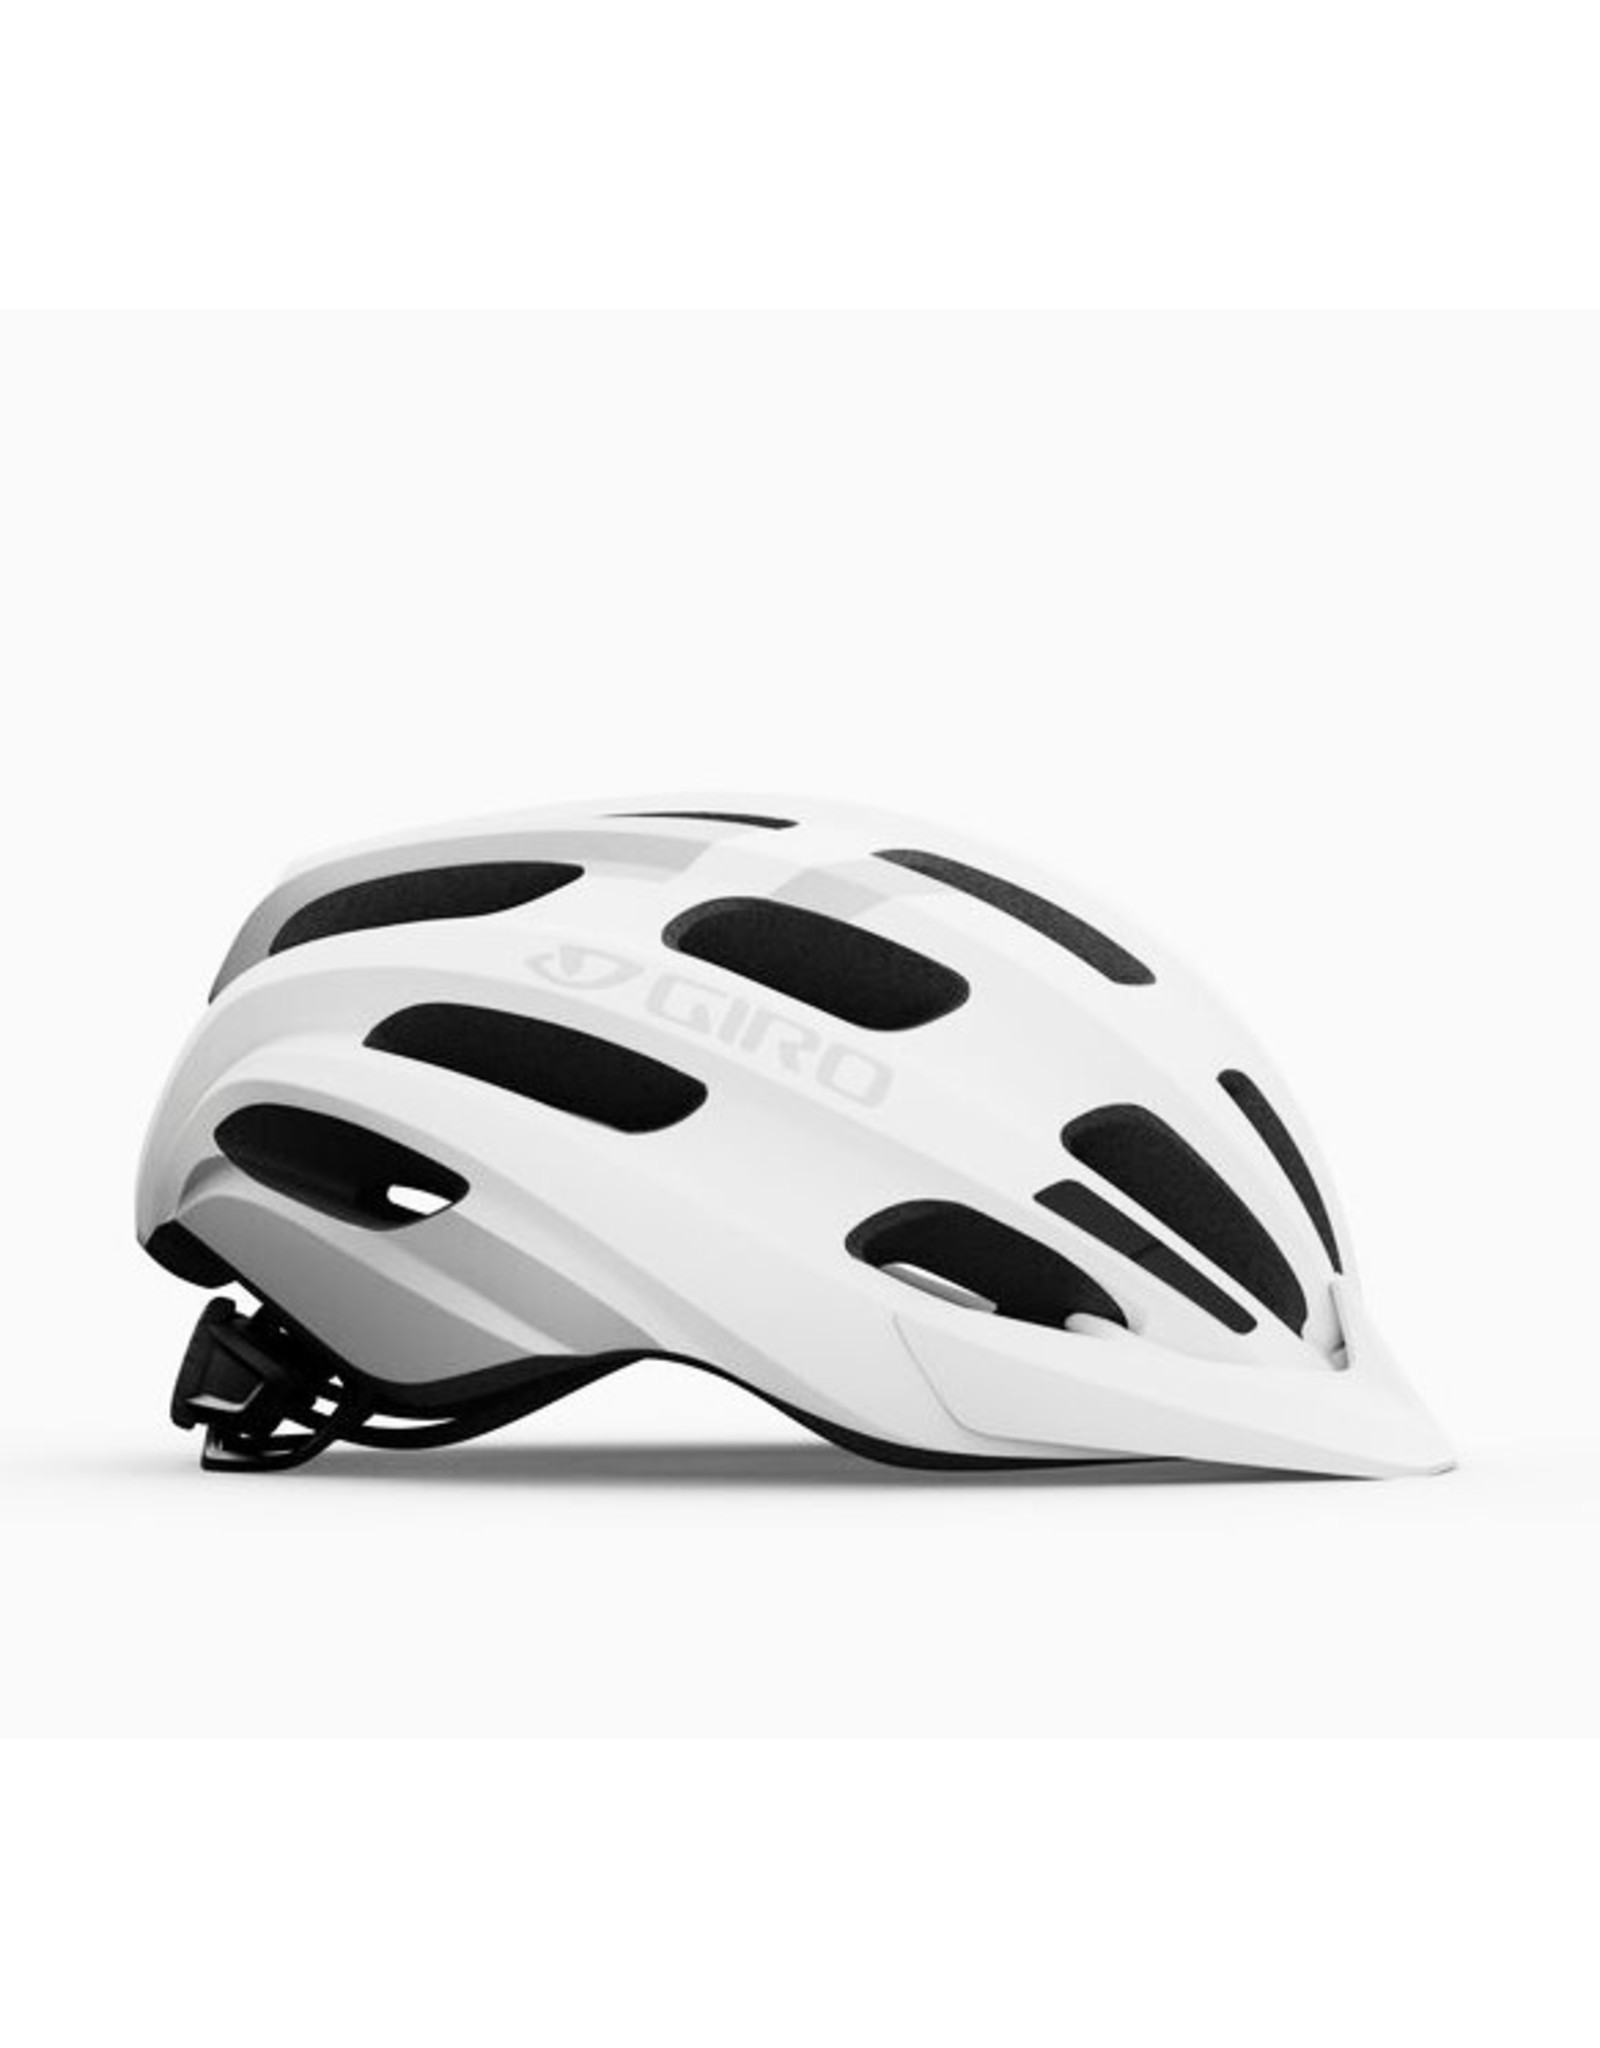 Giro GIRO BRONTE REGISTER  UXL 58-65cm bike helmet